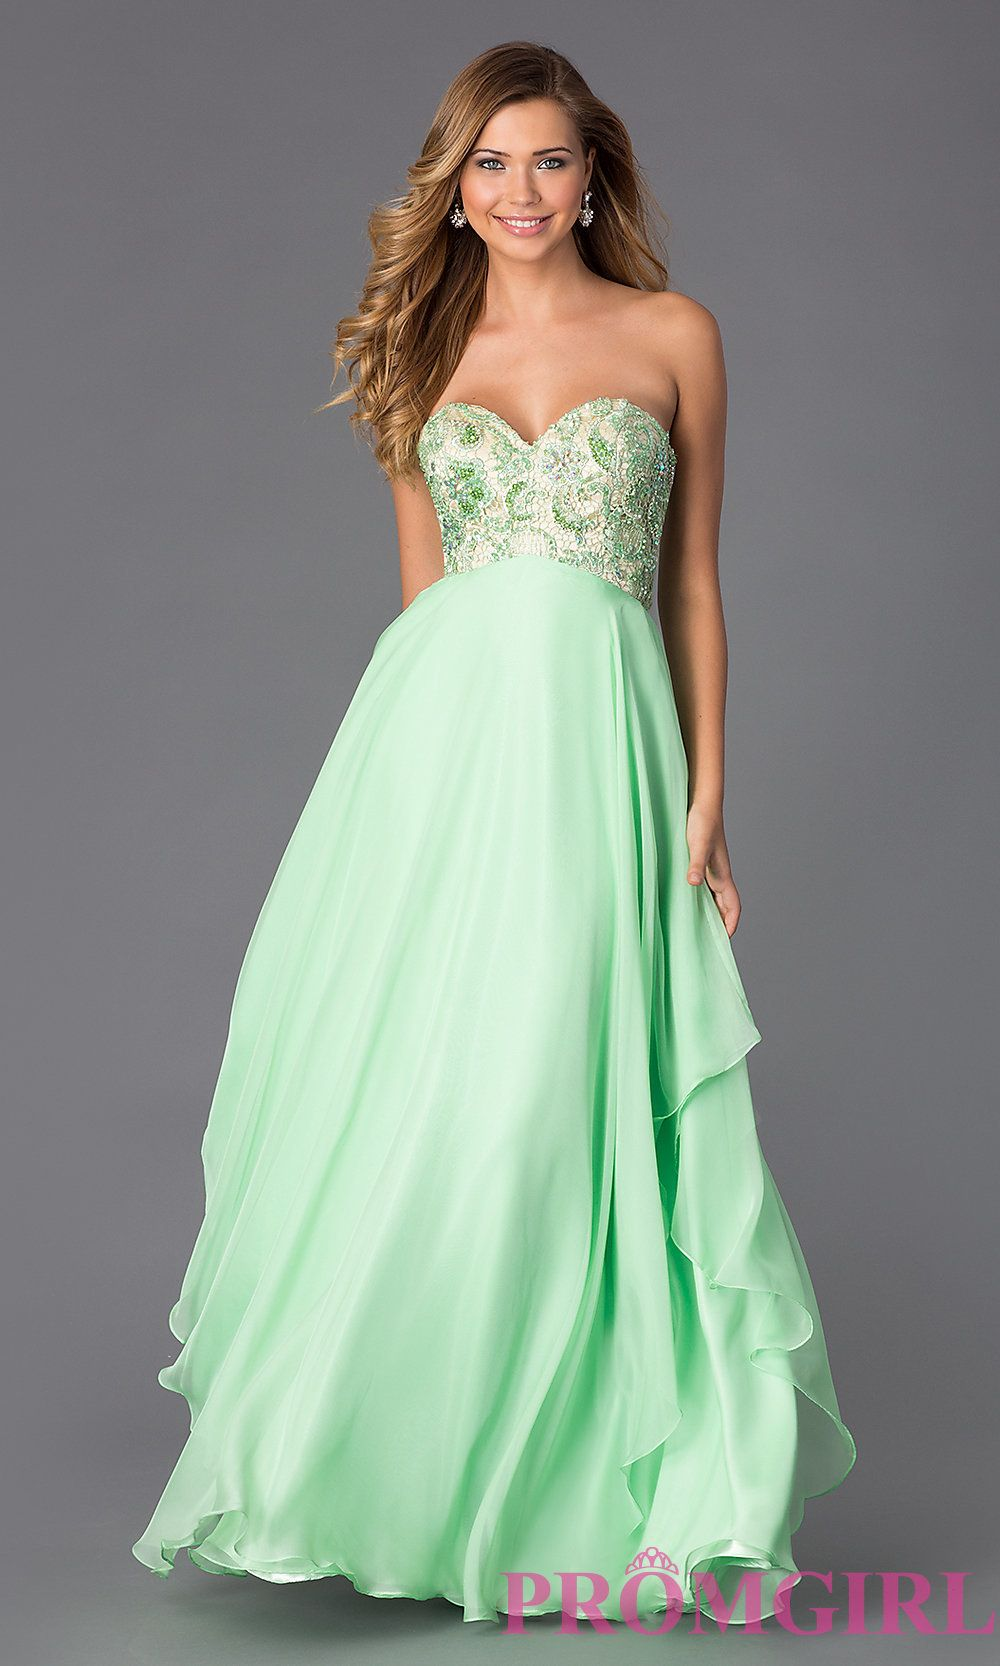 Image of Alyce Empire Waist Prom Dress AL-35678 Style: AL-35678 ...